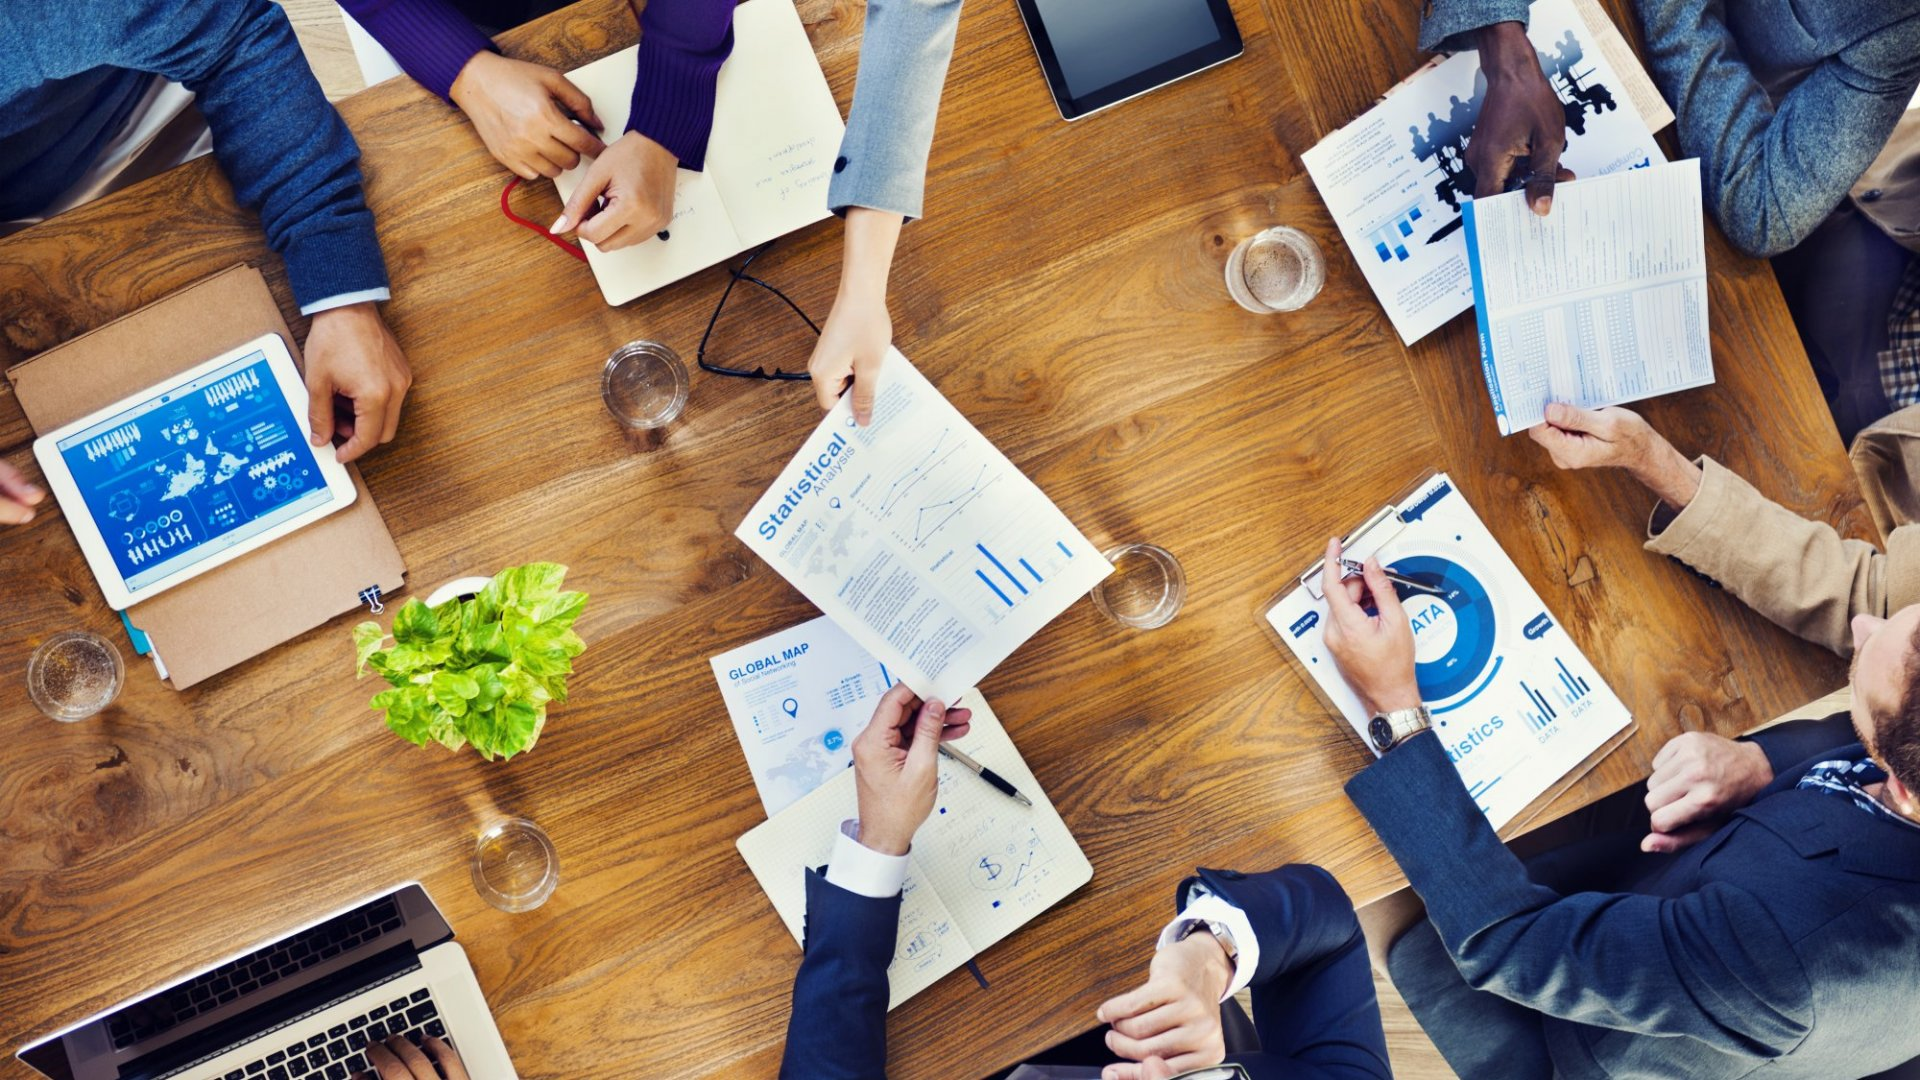 4 Things You Need To Know To Build A High Performing Team